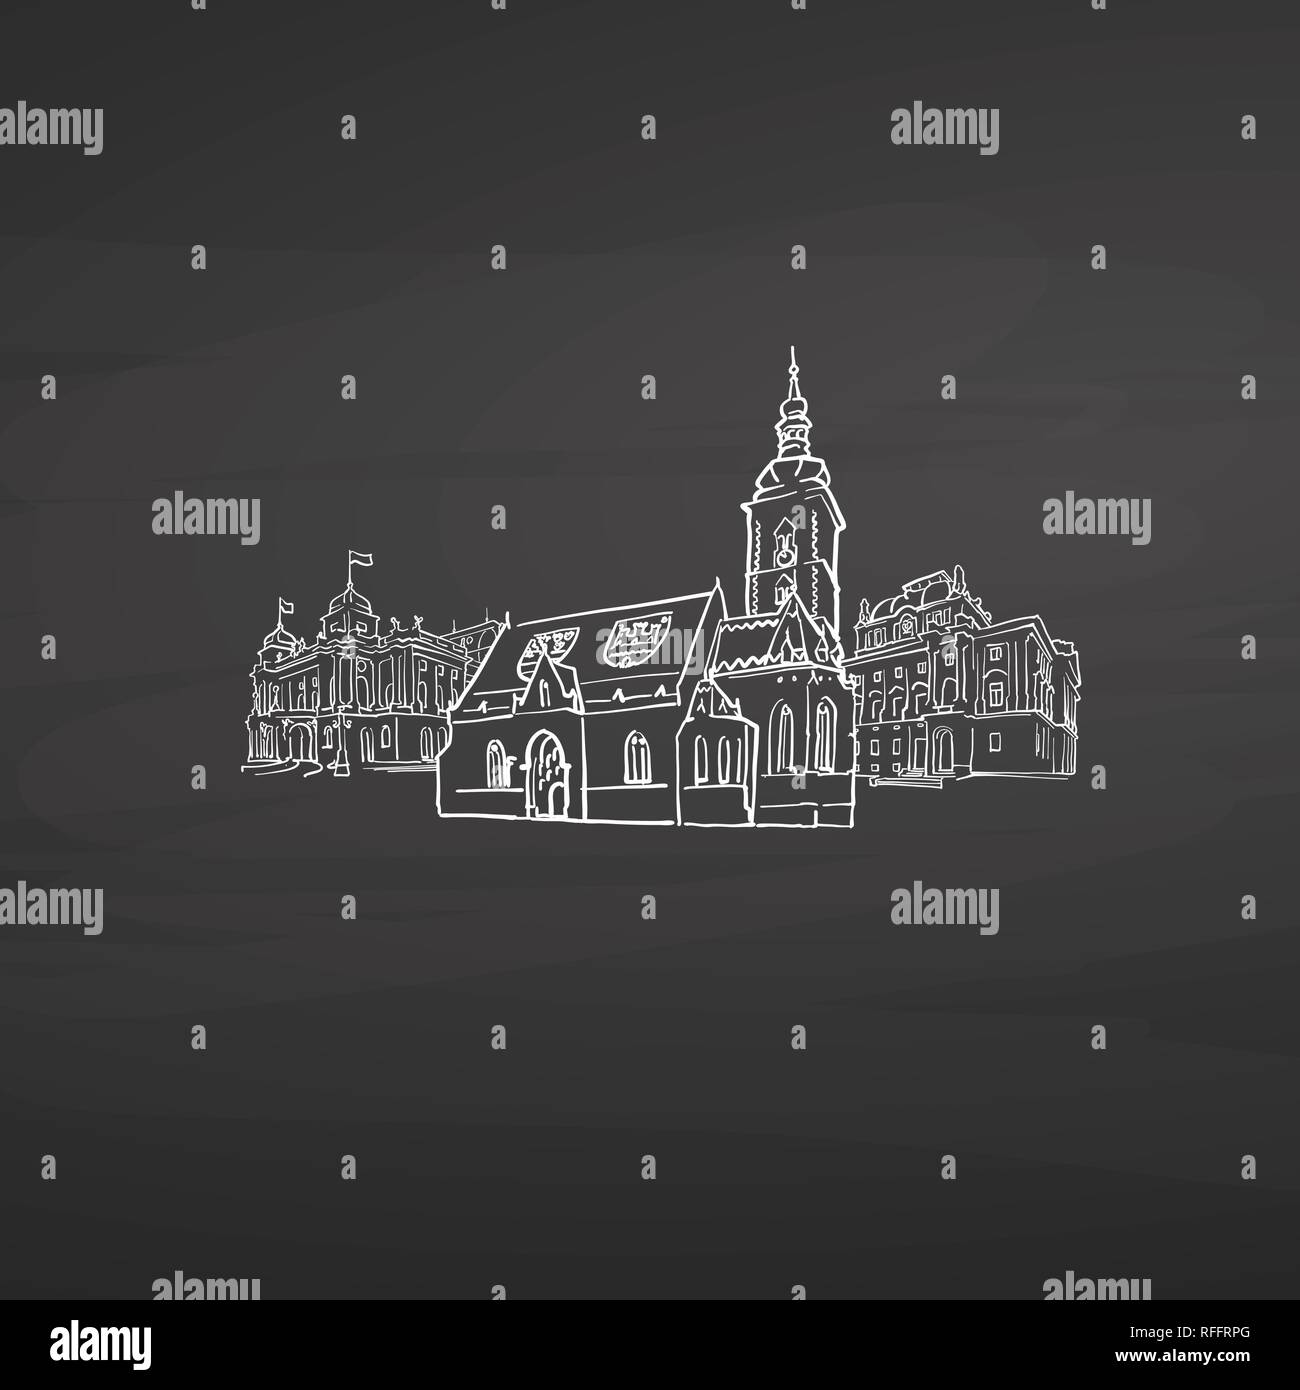 Zagreb Croatia signs on blackboard. Digital chalk drawn vector sketch on blackboard. European capitals destinations. - Stock Vector